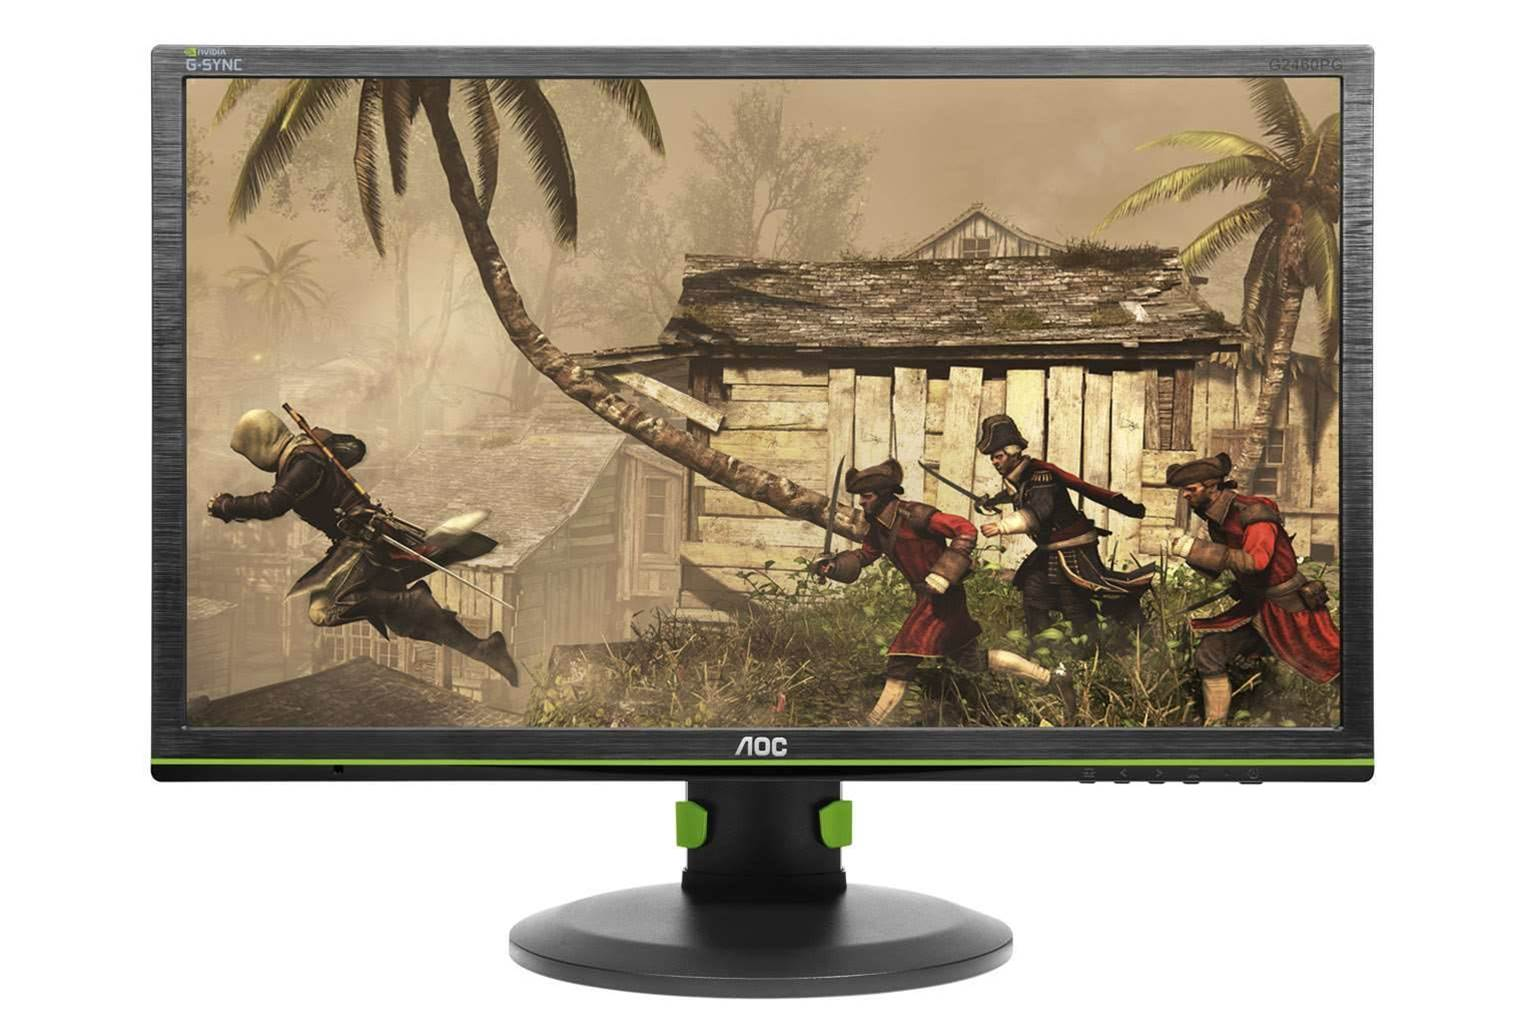 AOC launches new monitor focused on gaming